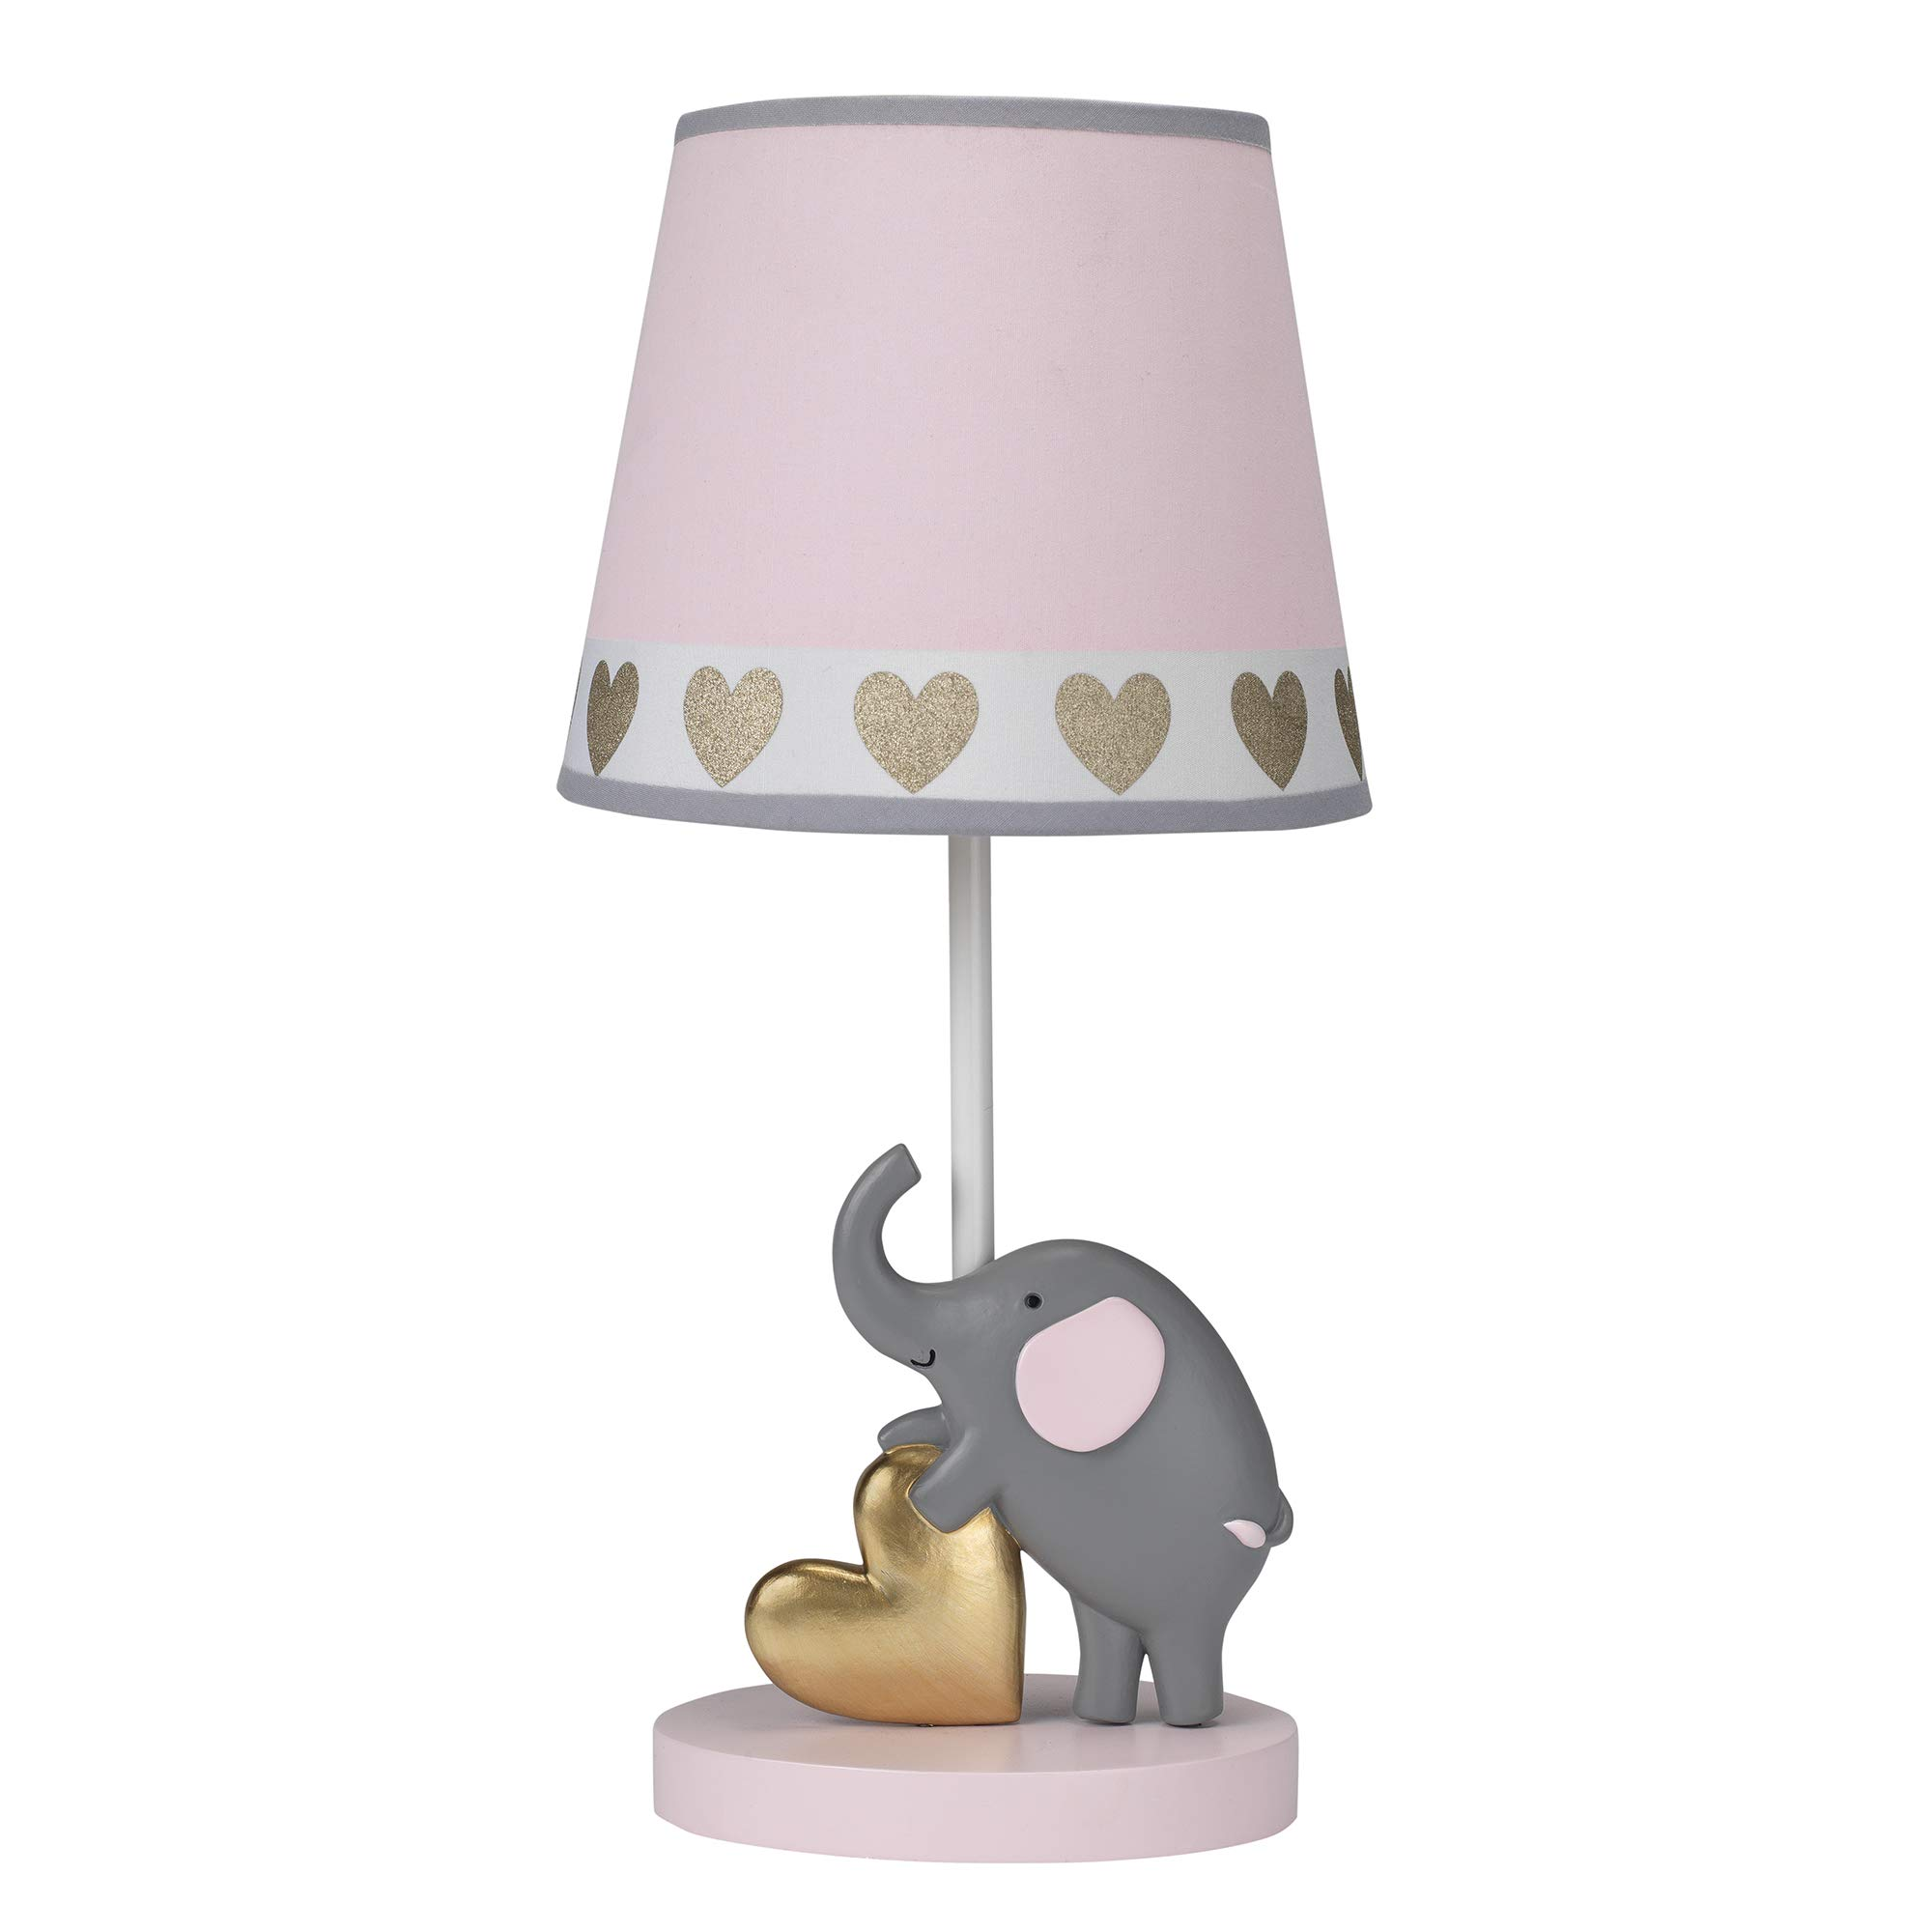 Bedtime Originals Eloise Nursery Lamp & Shade with Bulb - Pink, Gray, Animals